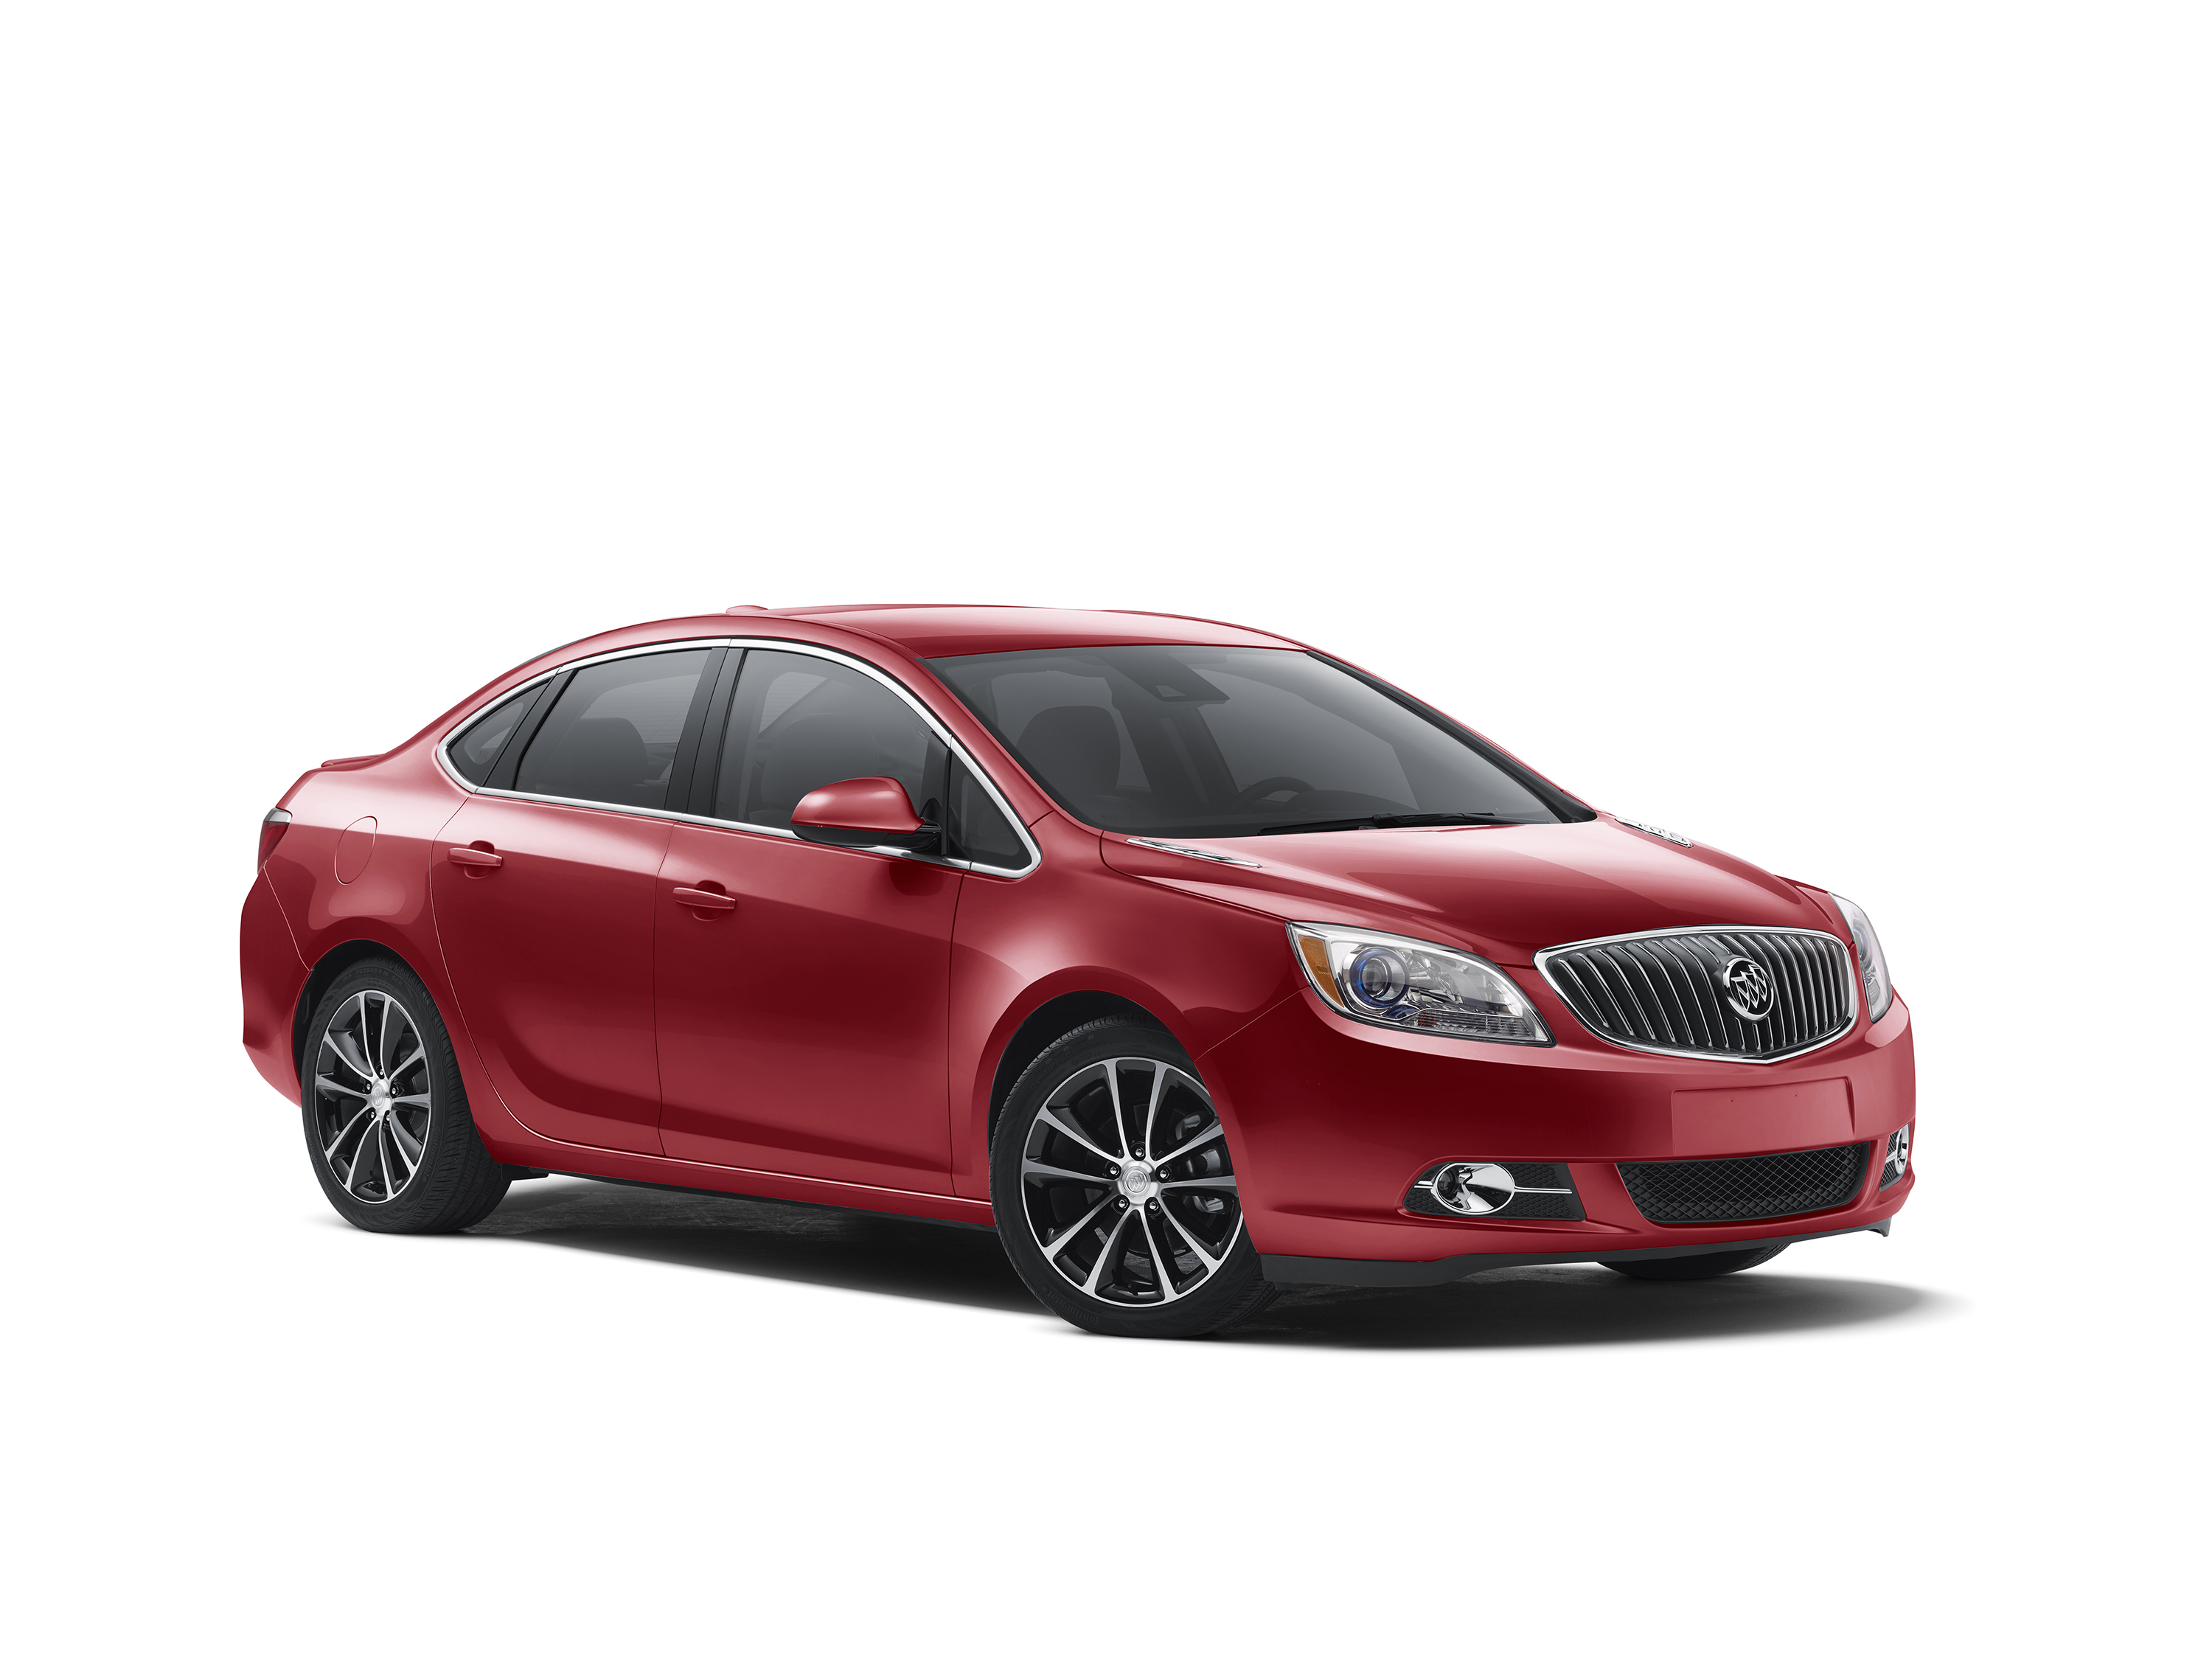 2013 Buick Verano Color Chart Wiring Diagram Used Jeep Regal For Sale El Paso Safety Review And Crash 3000x2254